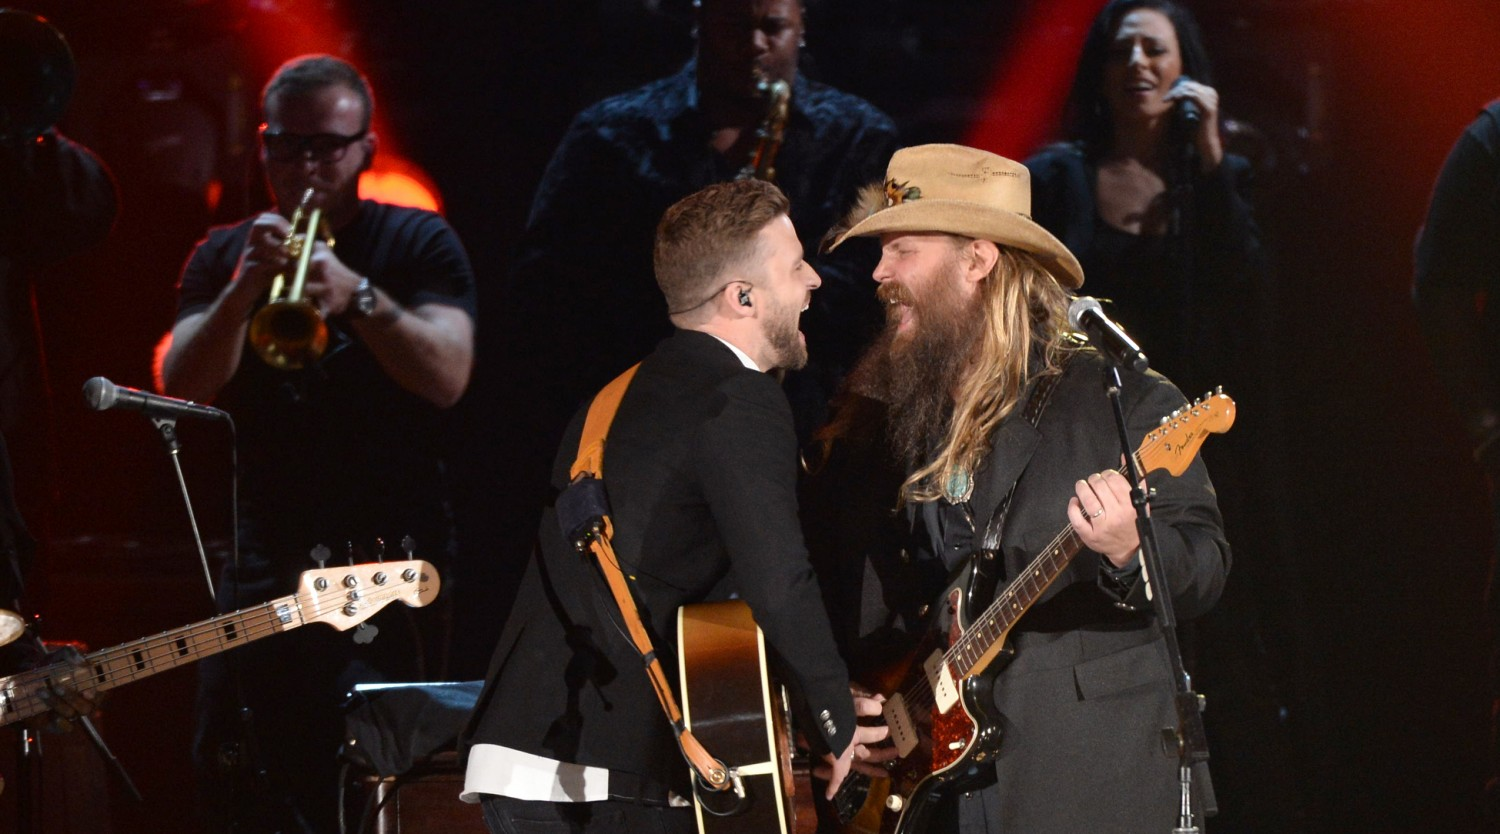 Tennessee whiskey grabs 2 on sales chart after chris for Songs chris stapleton wrote for others